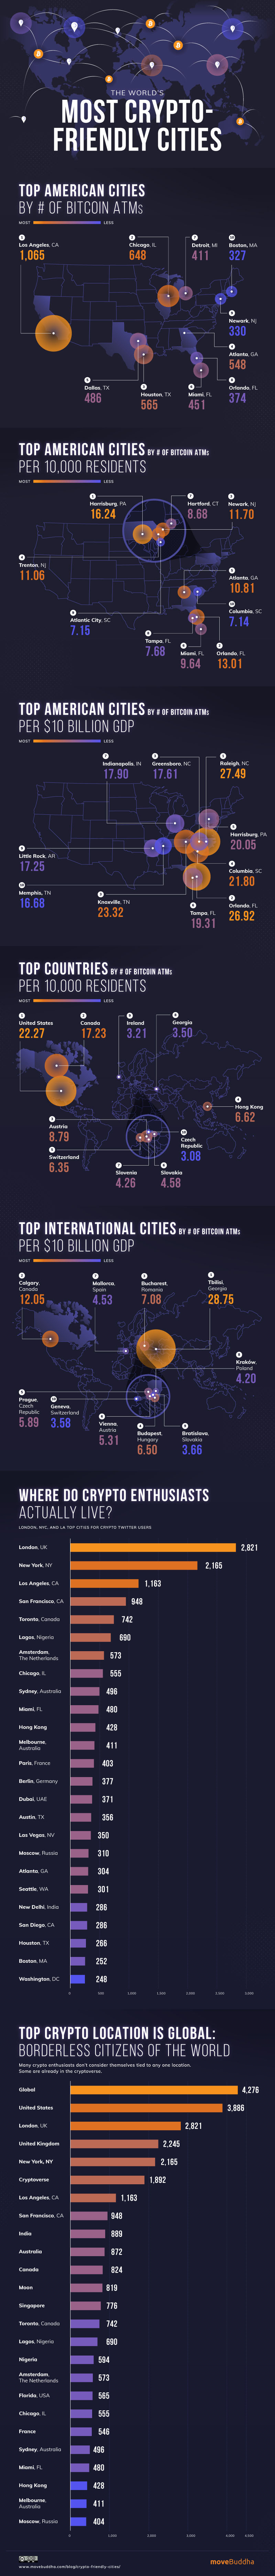 The World's Most Crypto-Friendly Cities